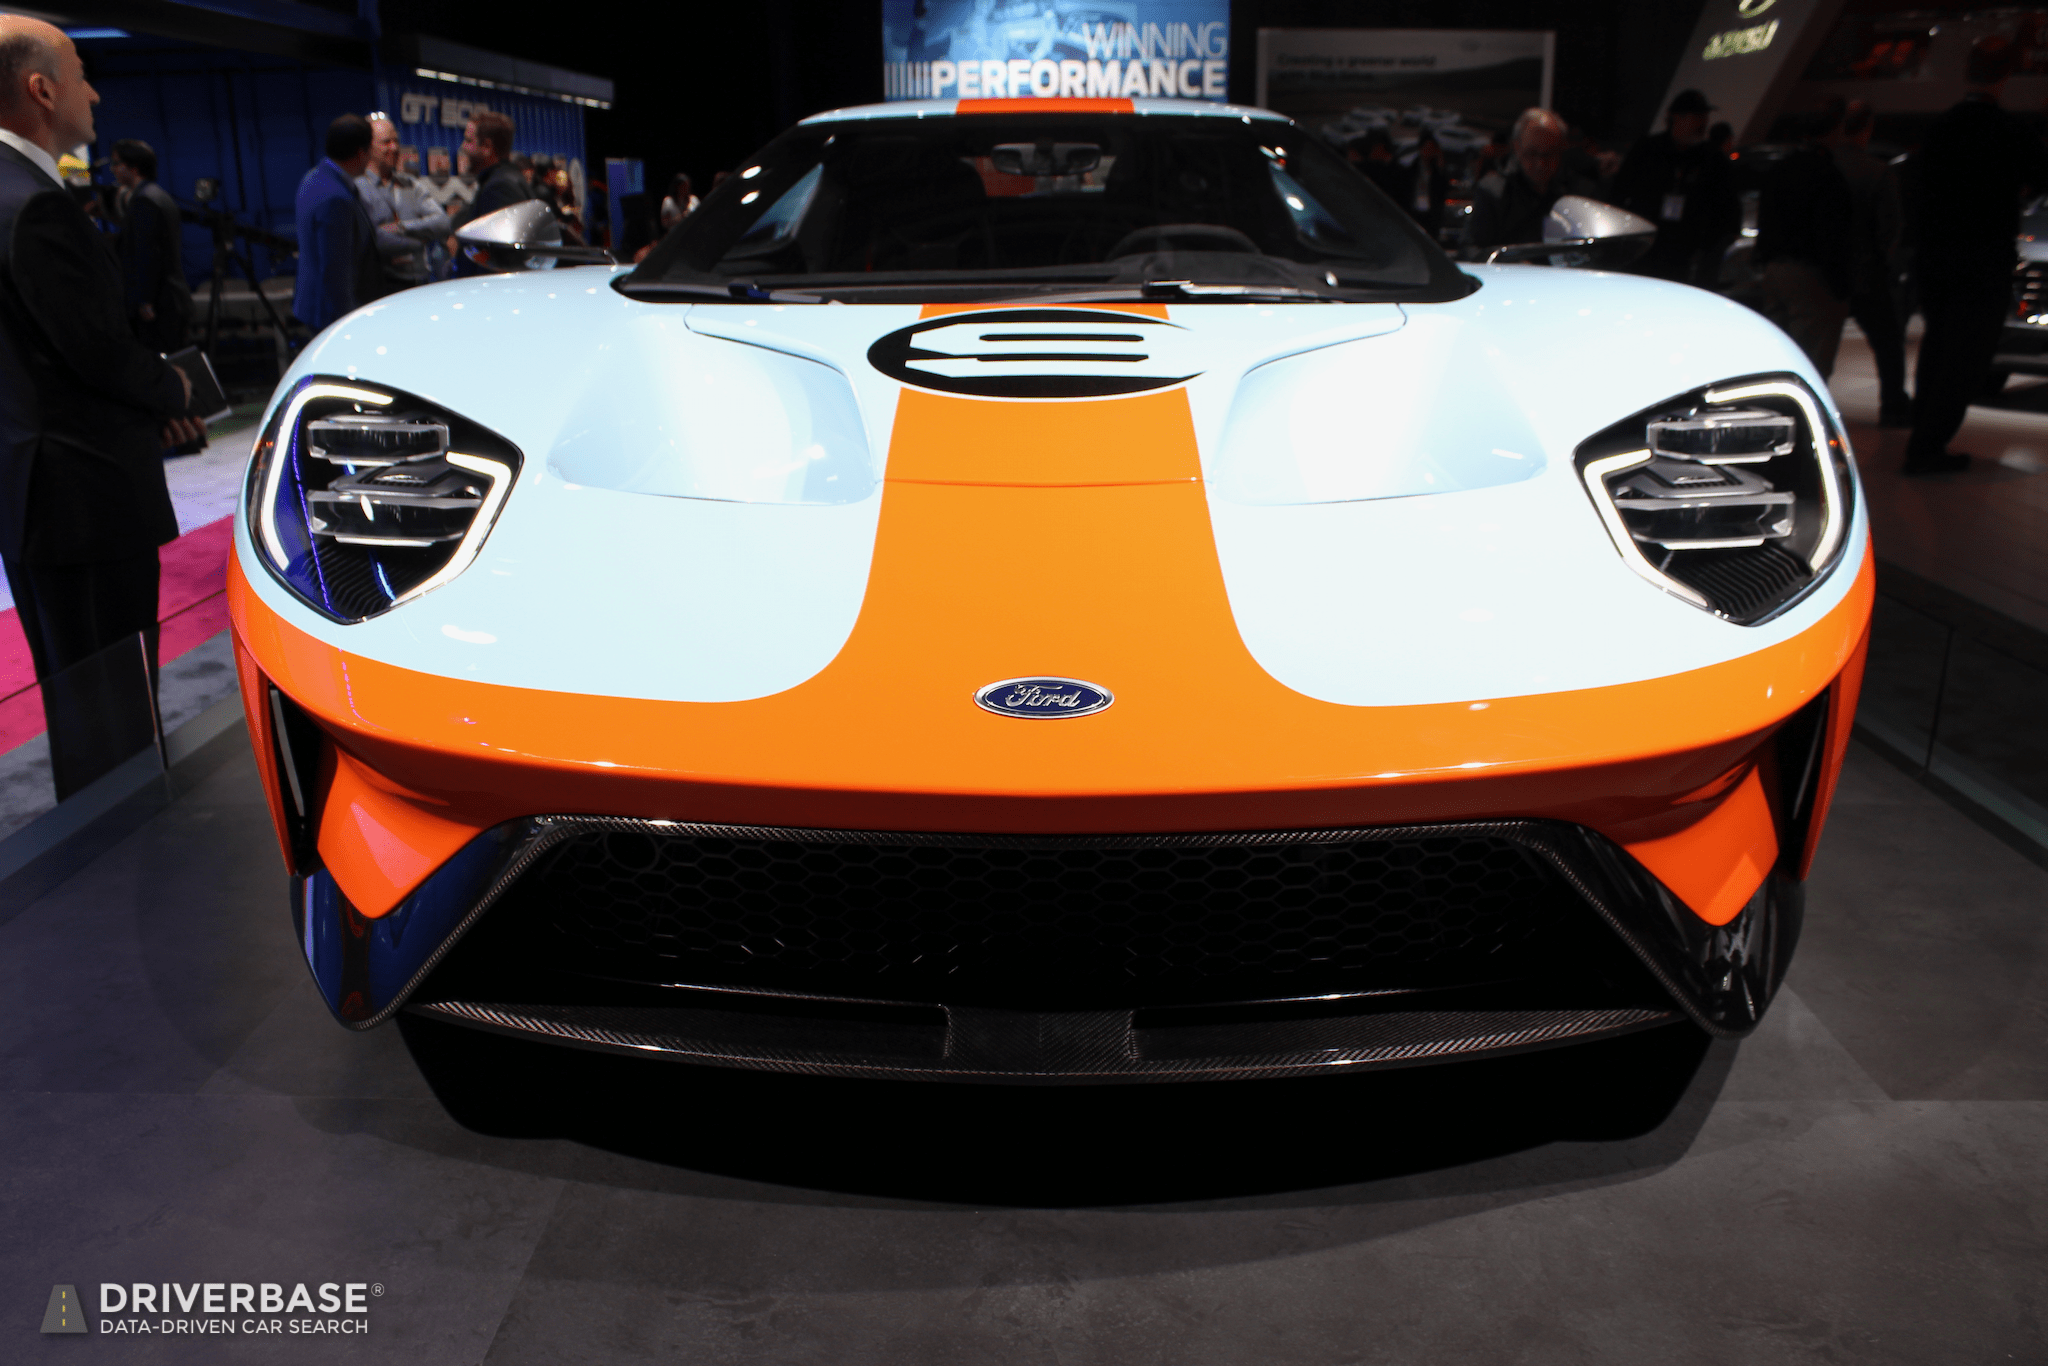 Used Cars Dealers >> 2020 Ford GT at the 2019 New York Auto Show – Driverbase